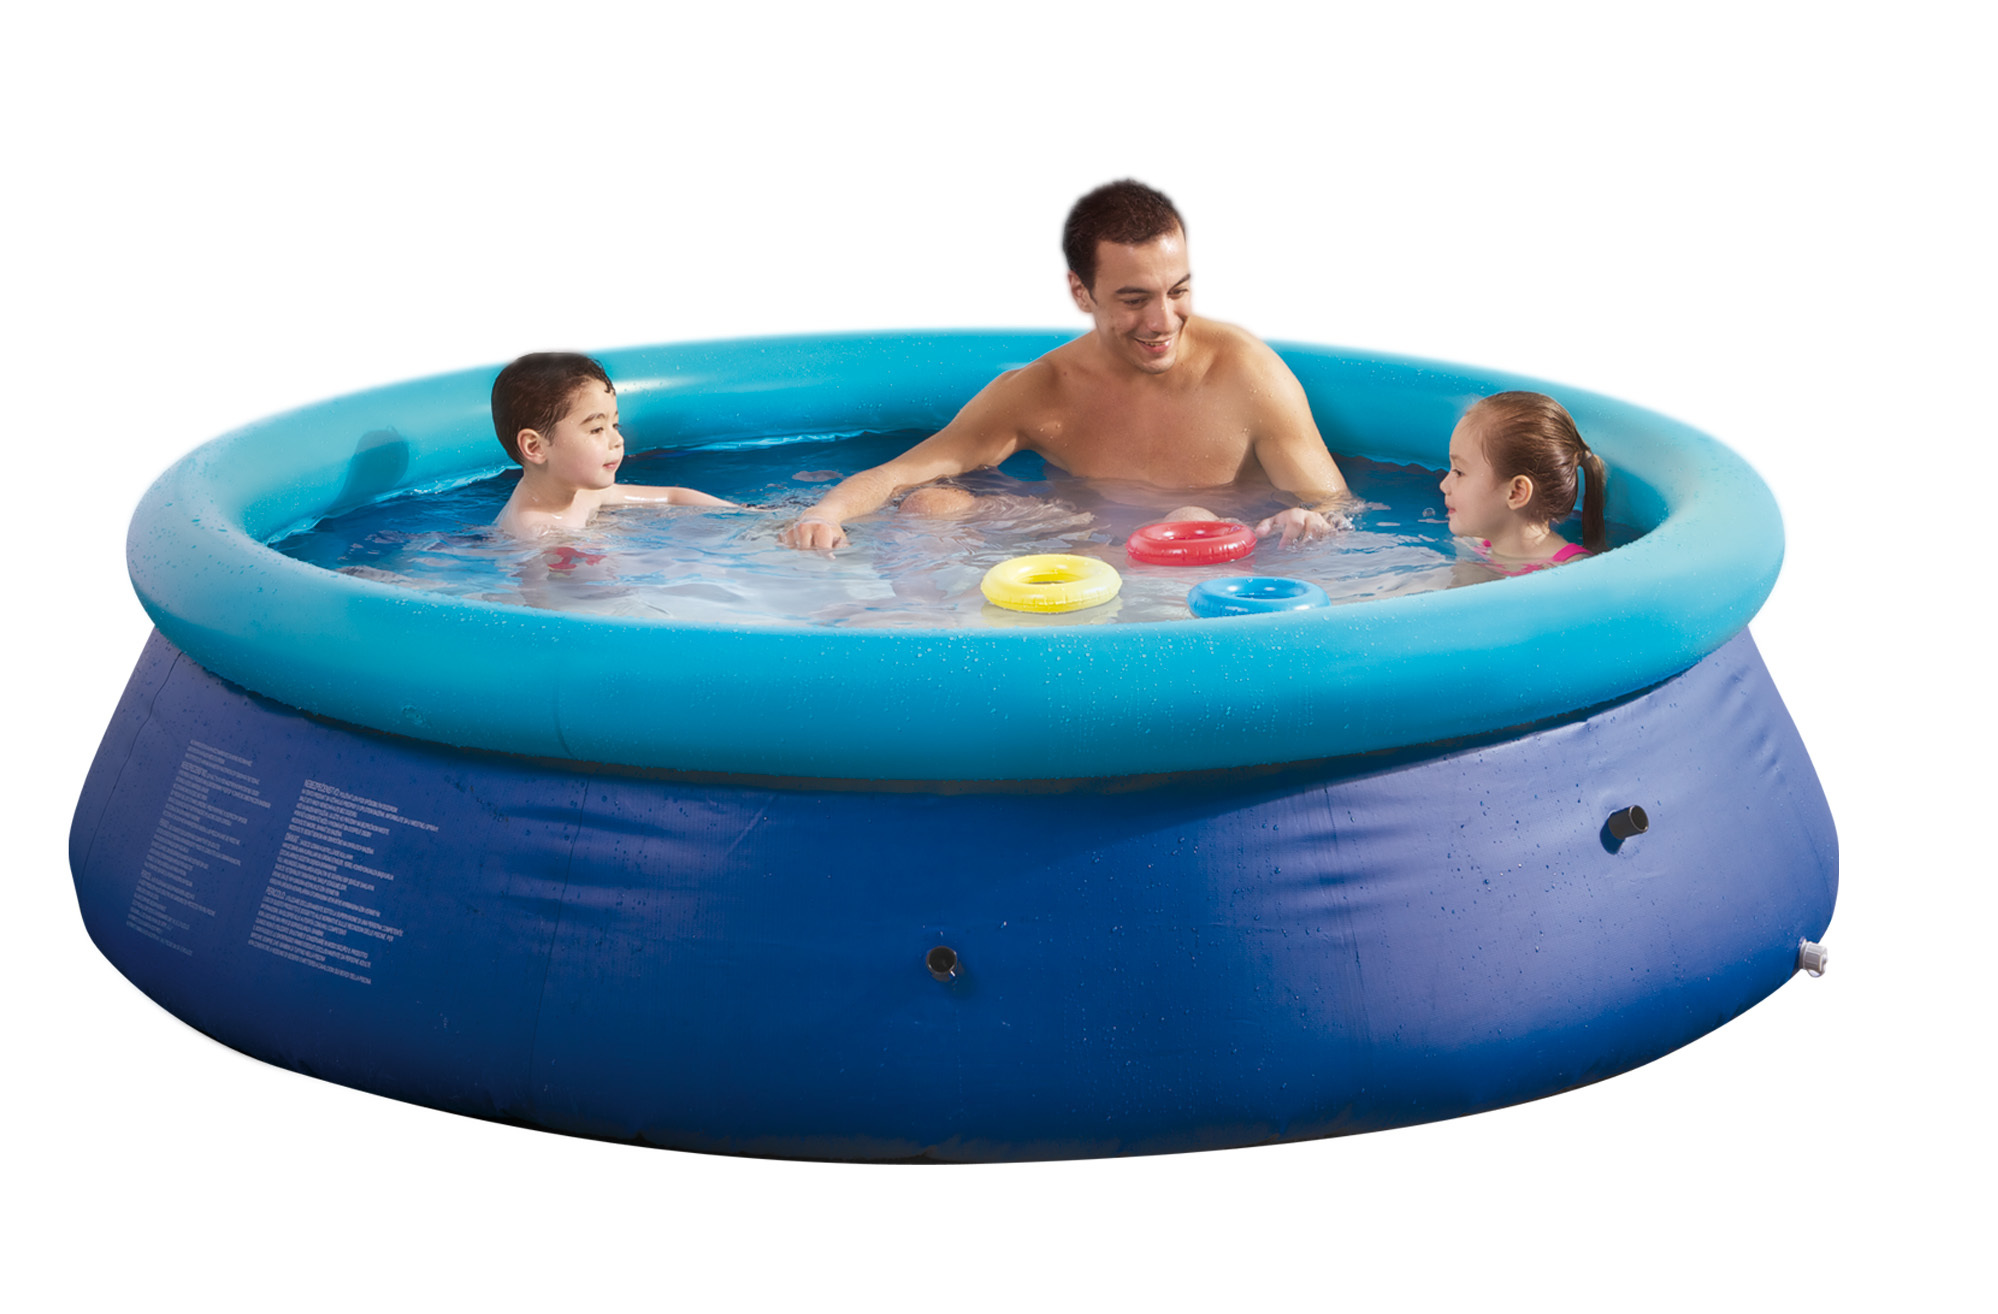 Spa gonflable pas cher carrefour crme frache with spa for Jacuzzi hinchable carrefour